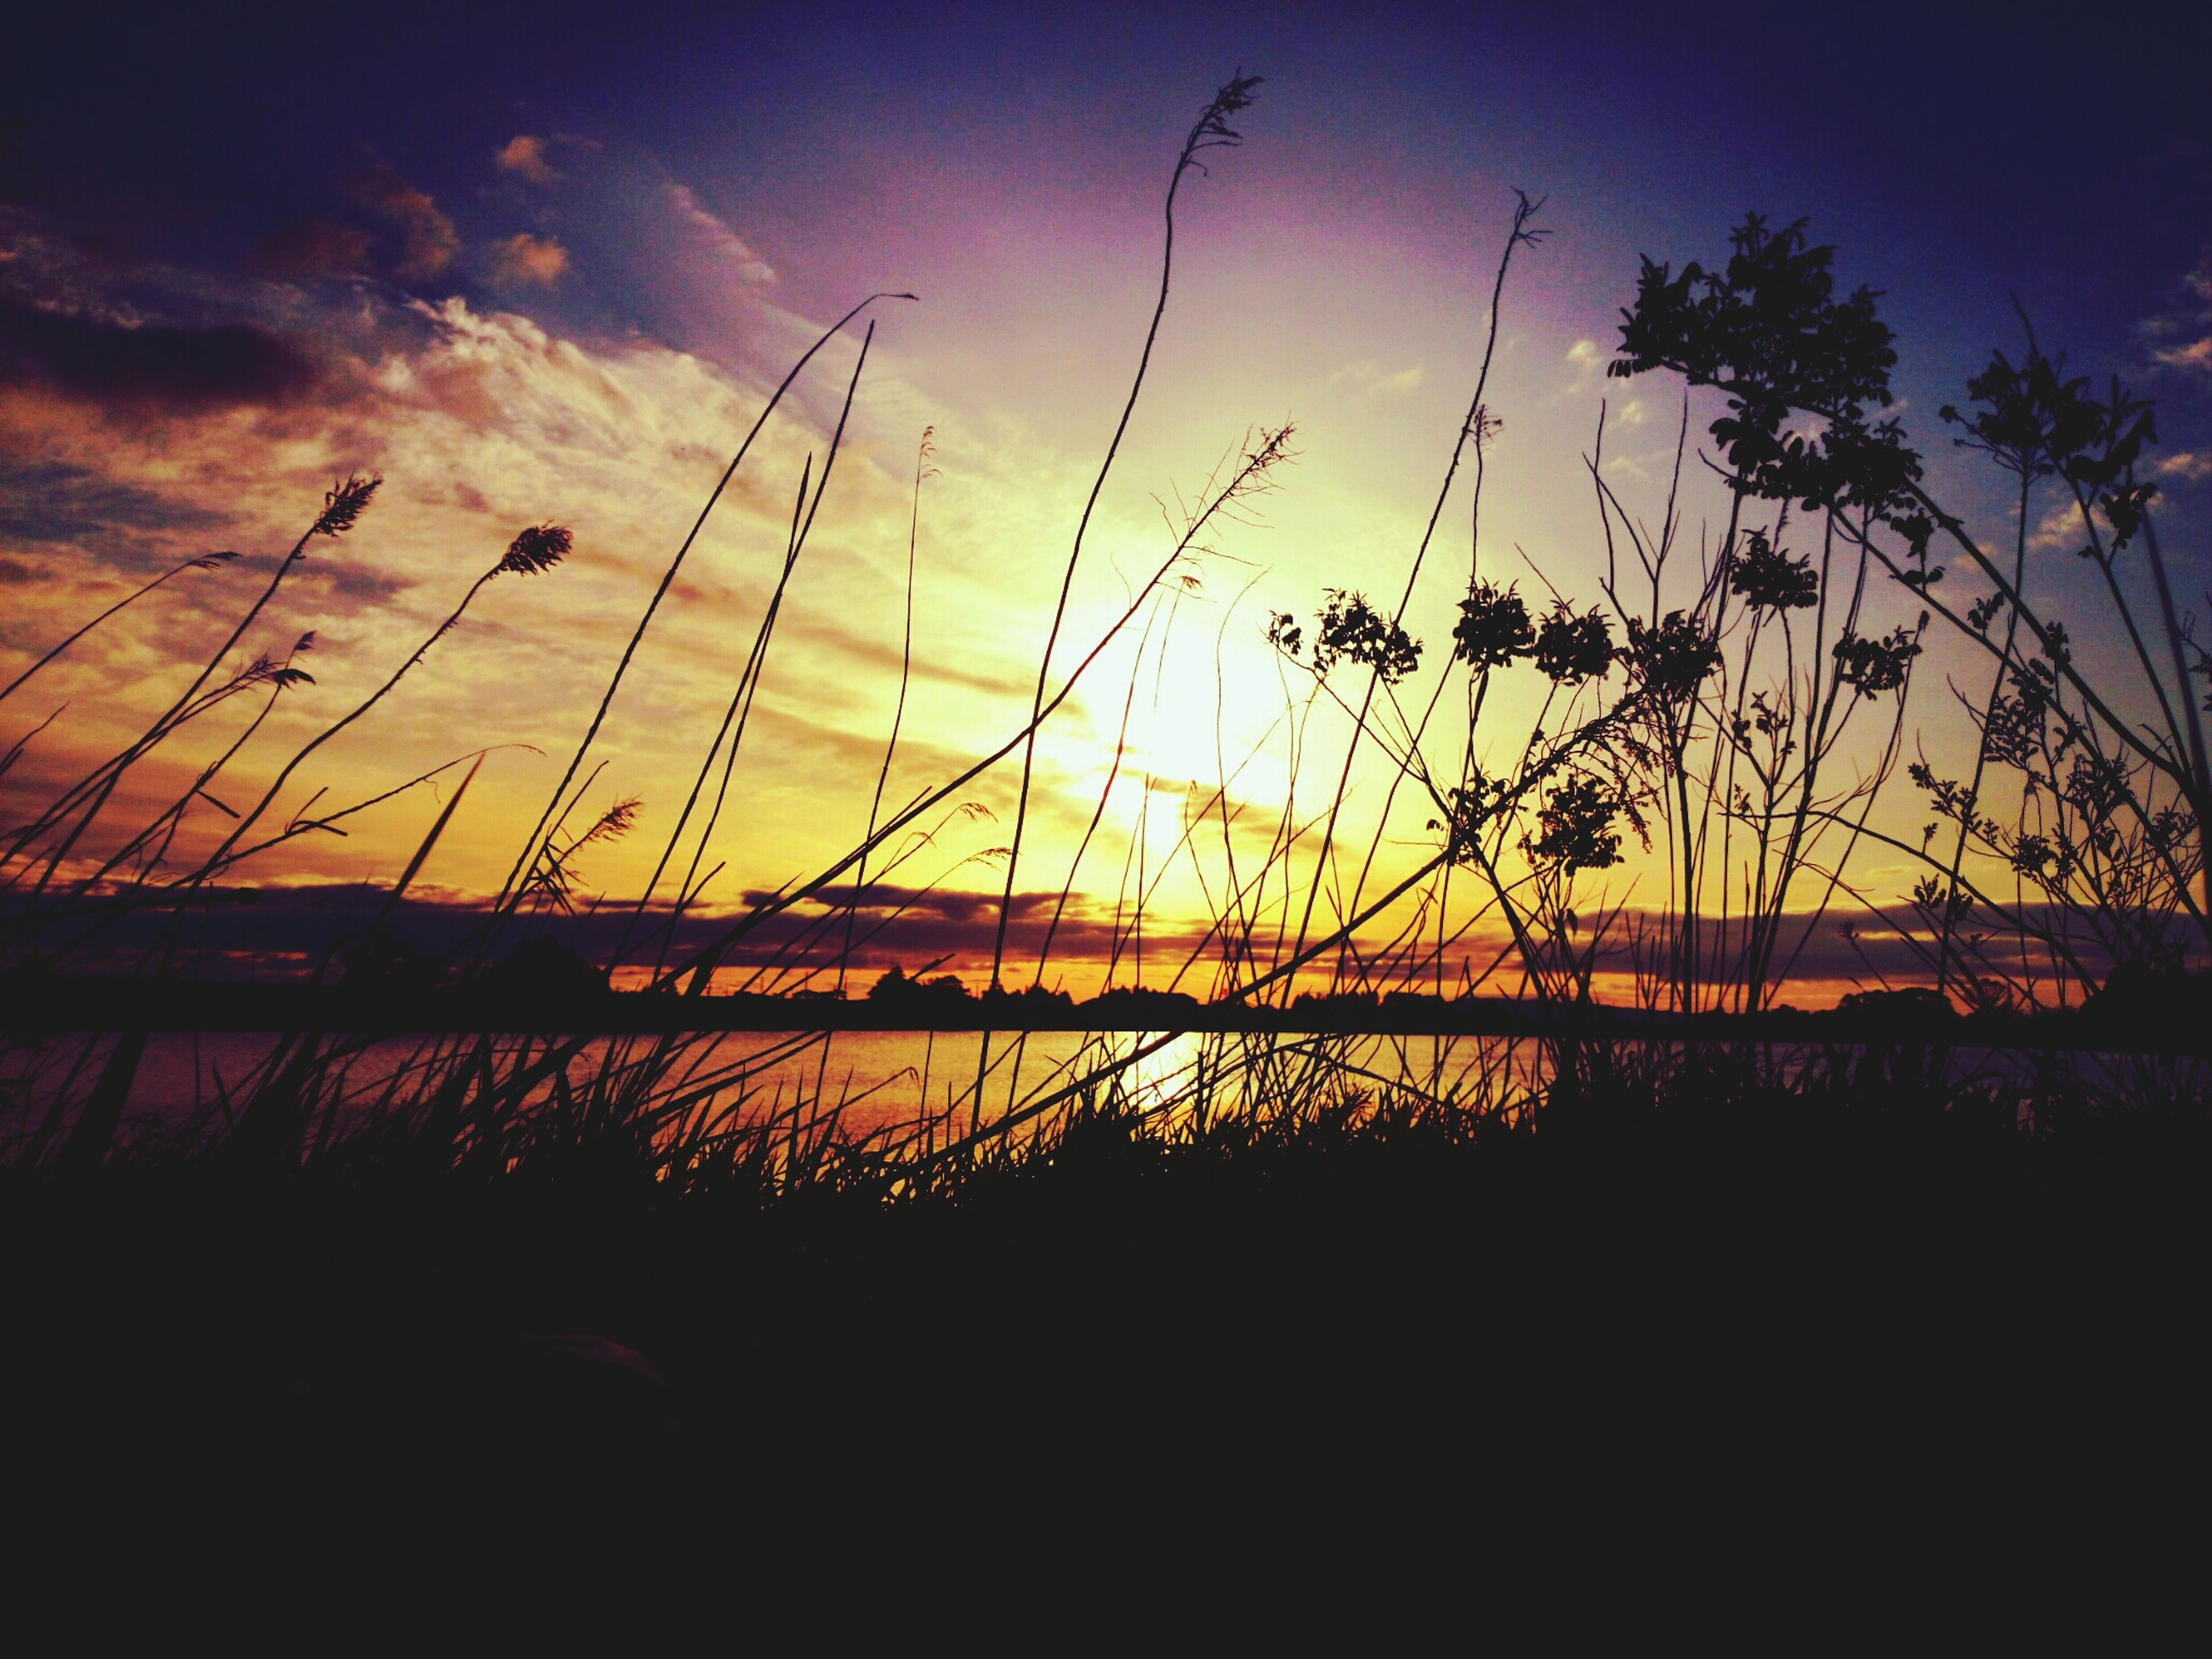 sunset, silhouette, sky, sun, tranquility, scenics, beauty in nature, tranquil scene, orange color, nature, water, cloud - sky, idyllic, plant, cloud, sunlight, outdoors, reflection, no people, dusk